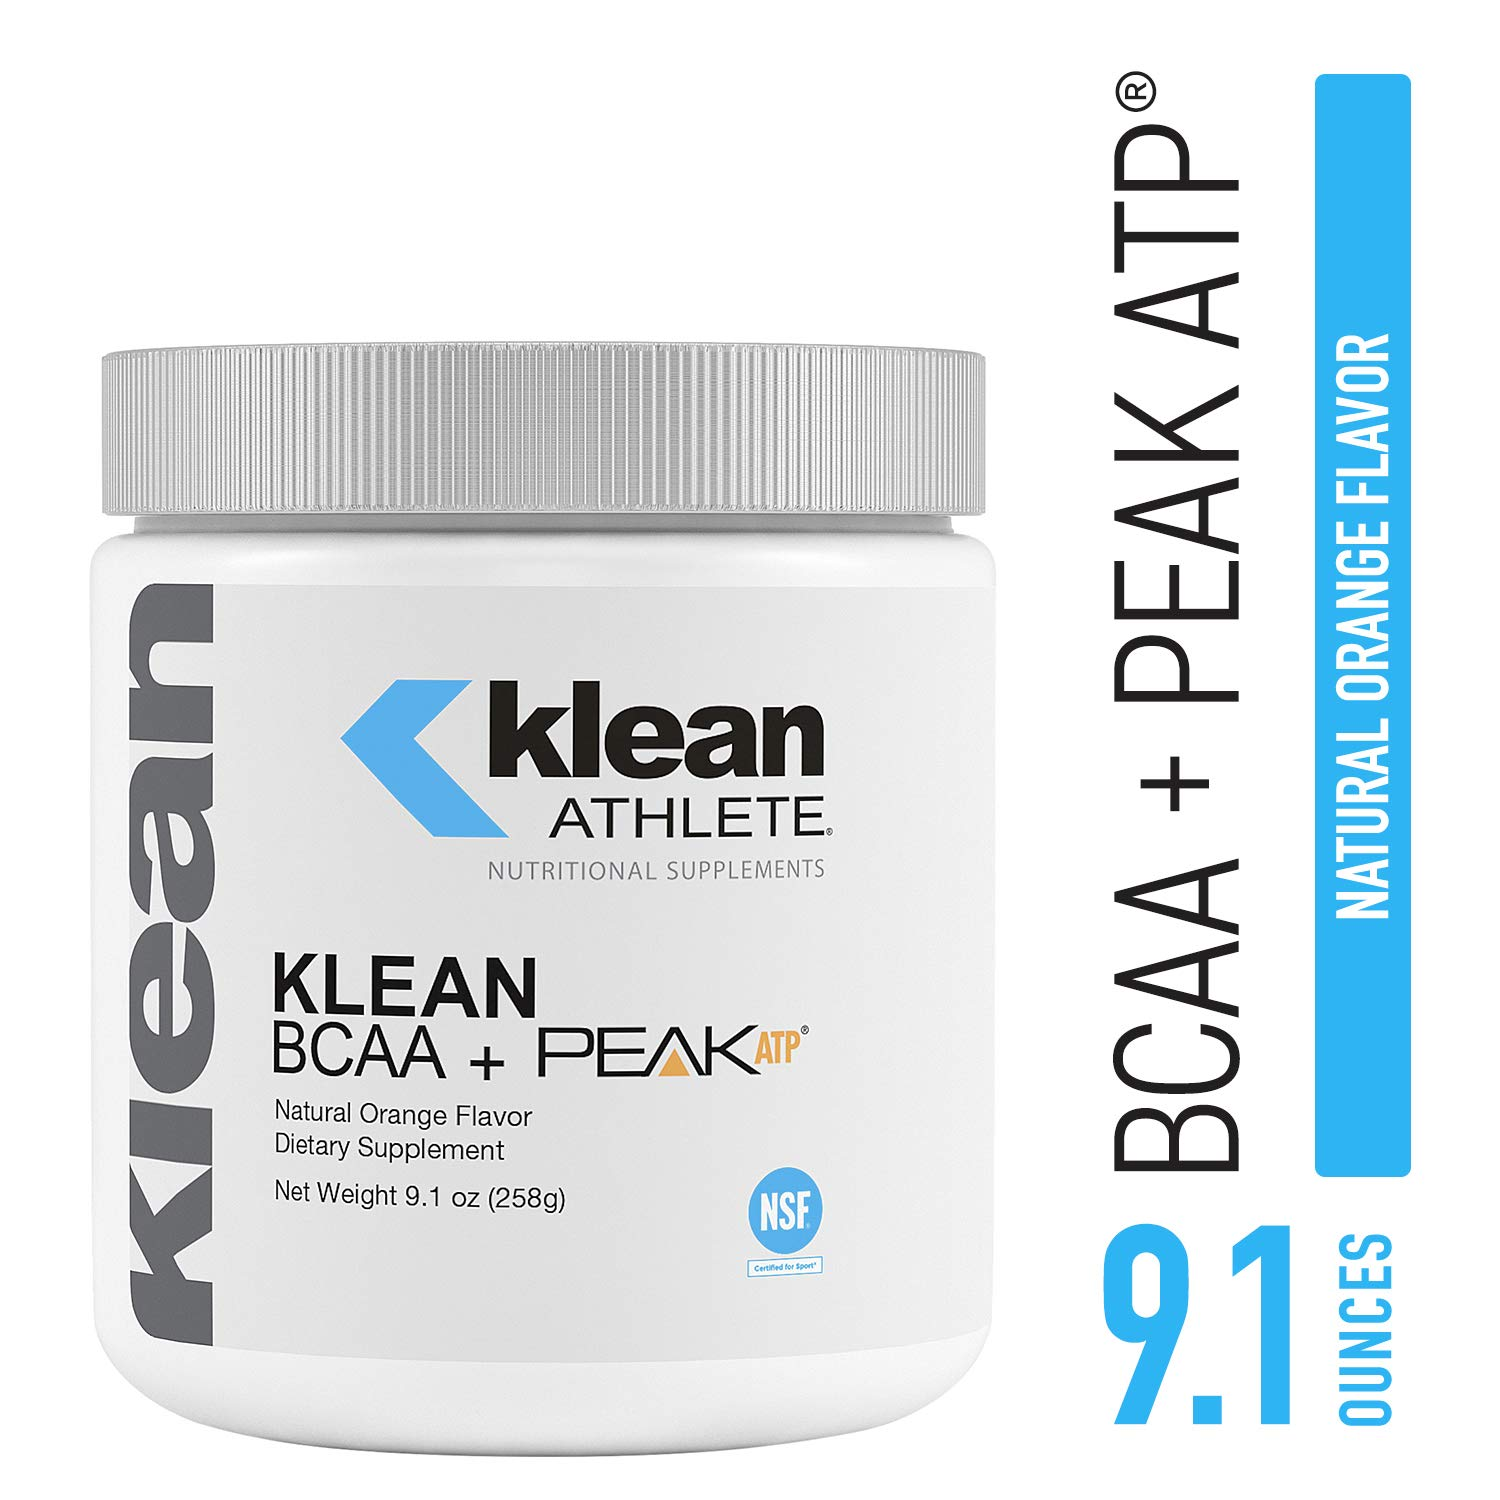 Klean Athlete – Klean BCAA Peak ATP – Branched Chain Amino Acids to Support Muscular Performance and Recovery* – NSF Certified for Sport – Natural Orange Flavor – 9.1 oz 258 g